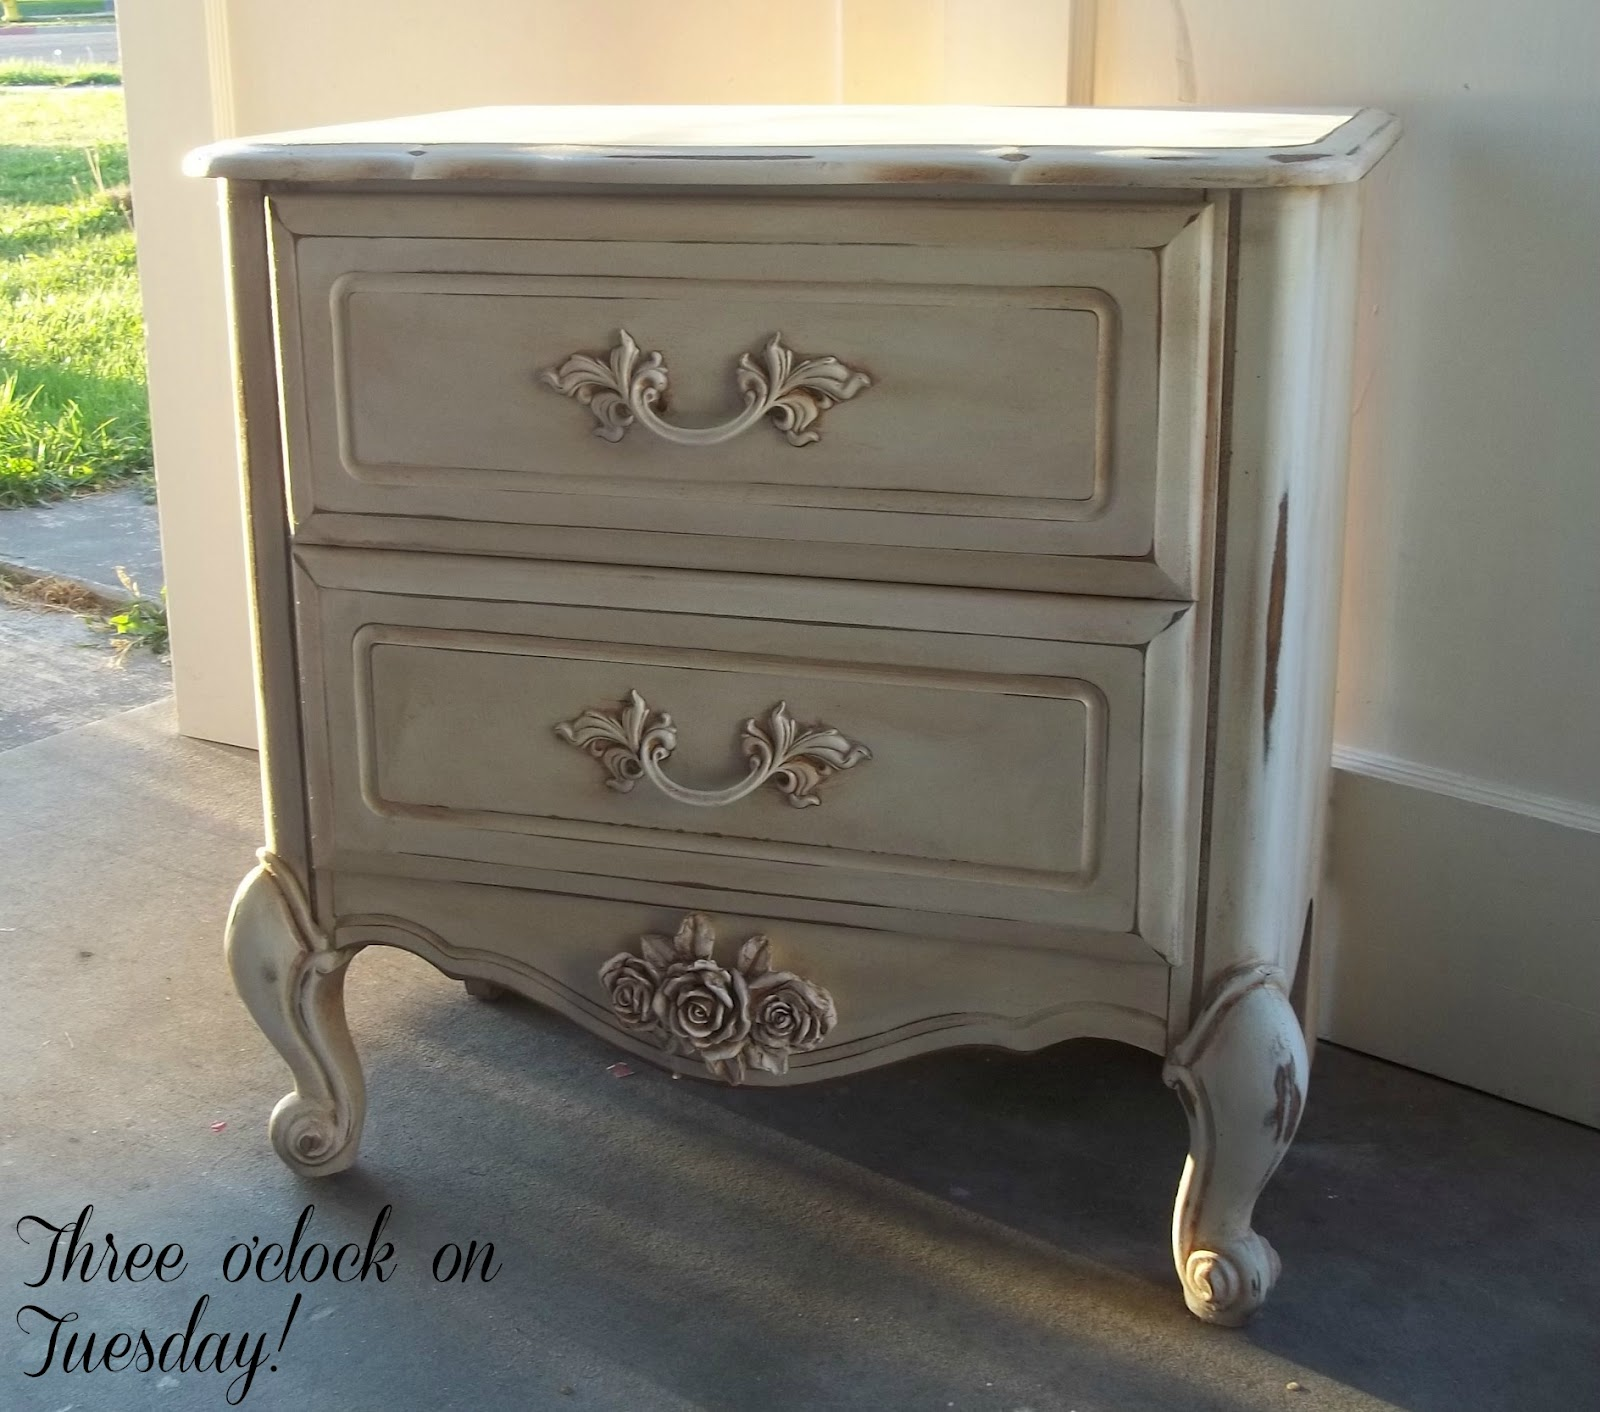 Sold Beautiful shabby-chic nightstand!